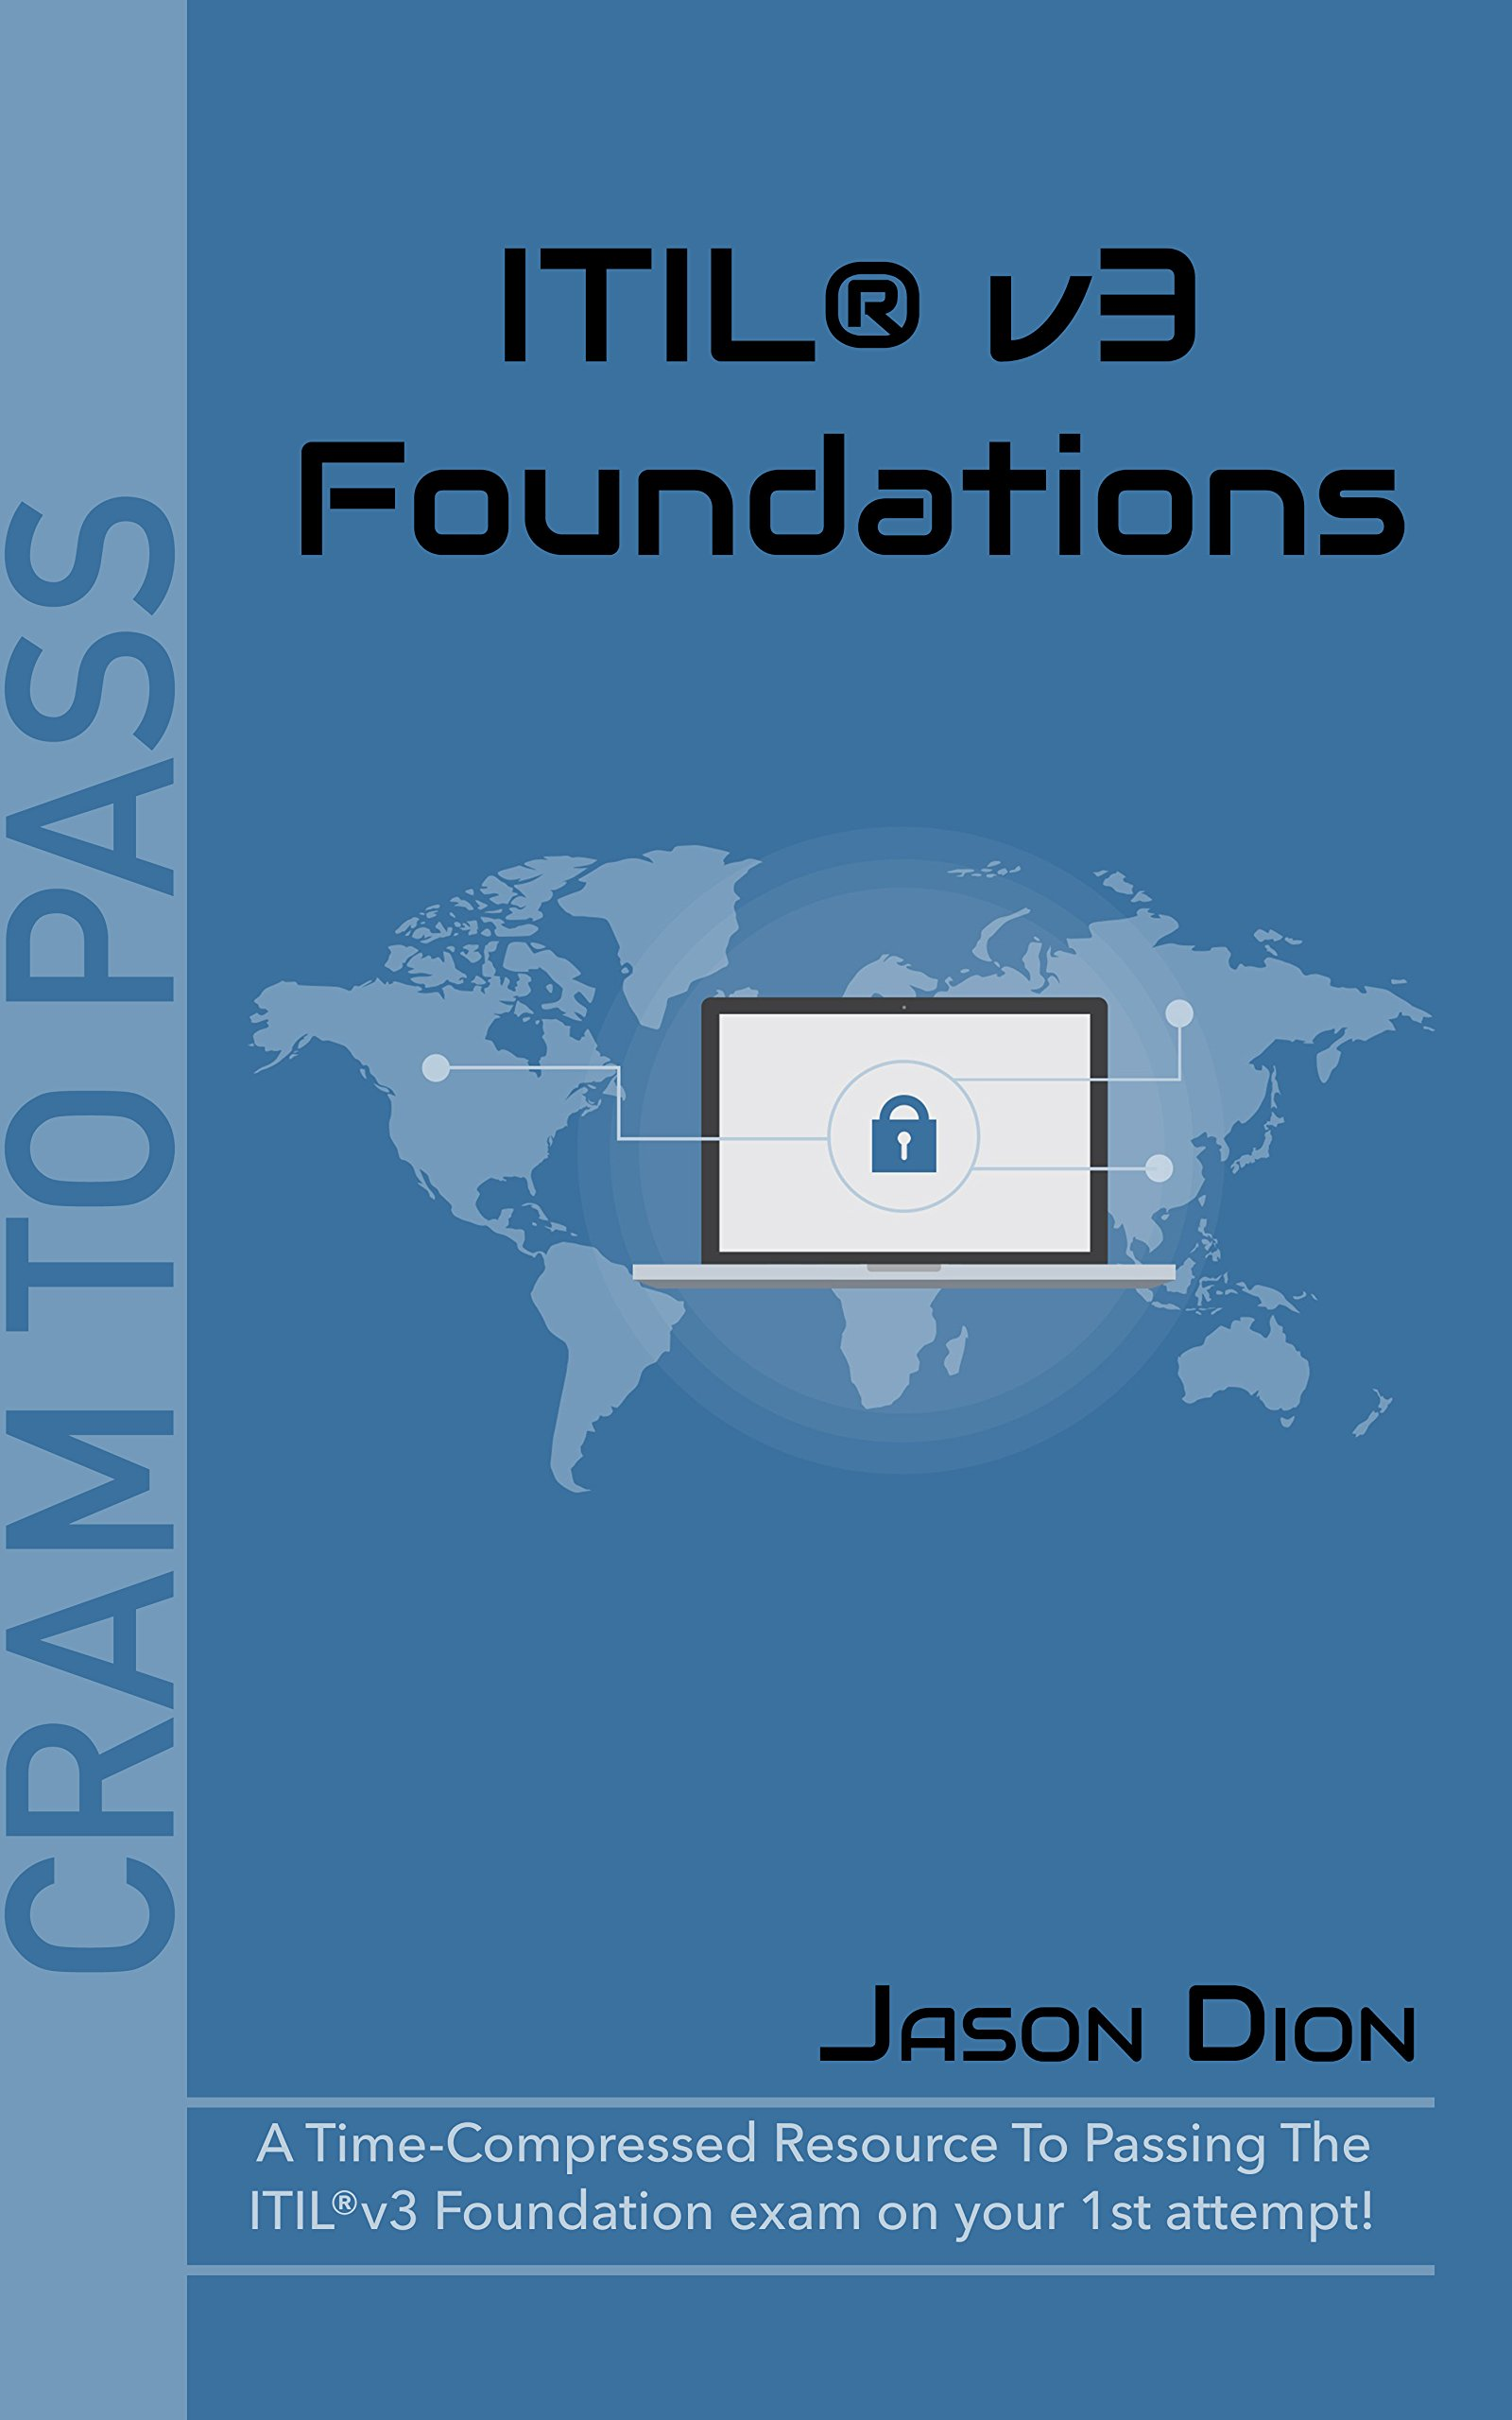 Itil V3 Foundations A Time Compressed Resource To Passing The Itil